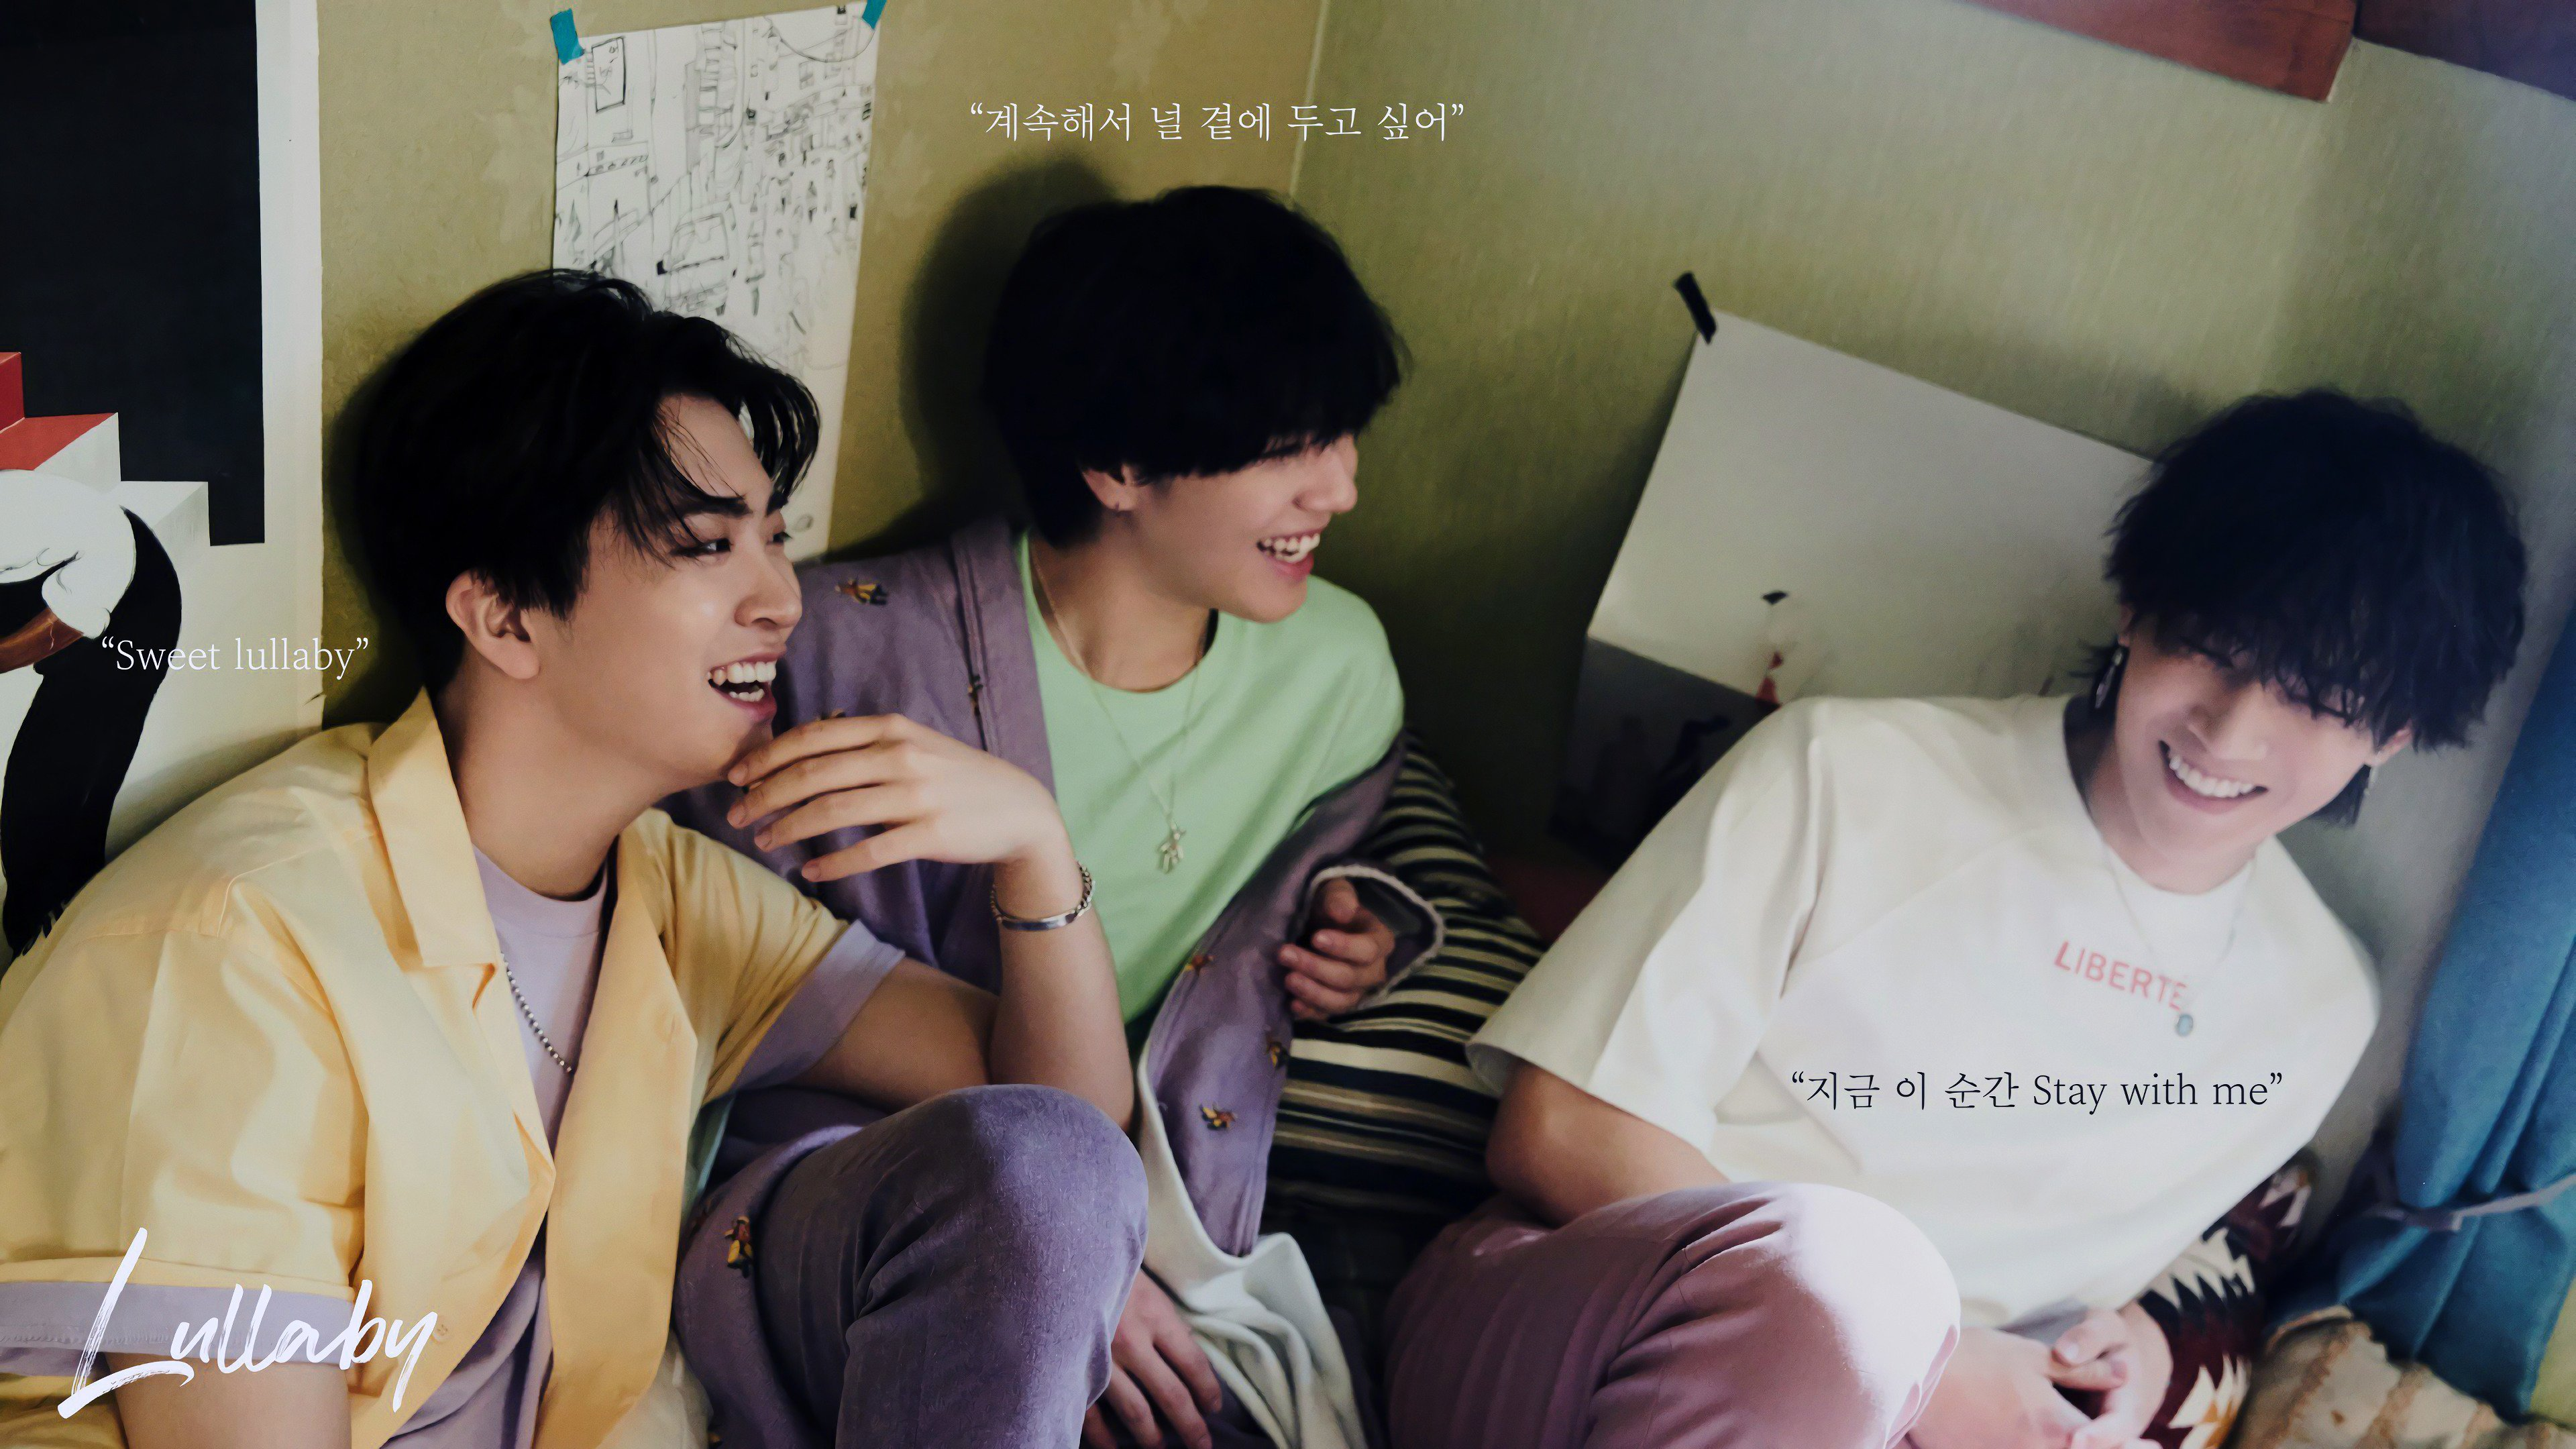 Youngjae Kim Yugyeom JB GOT7 Lullaby Present You 4K 23788 3840x2160